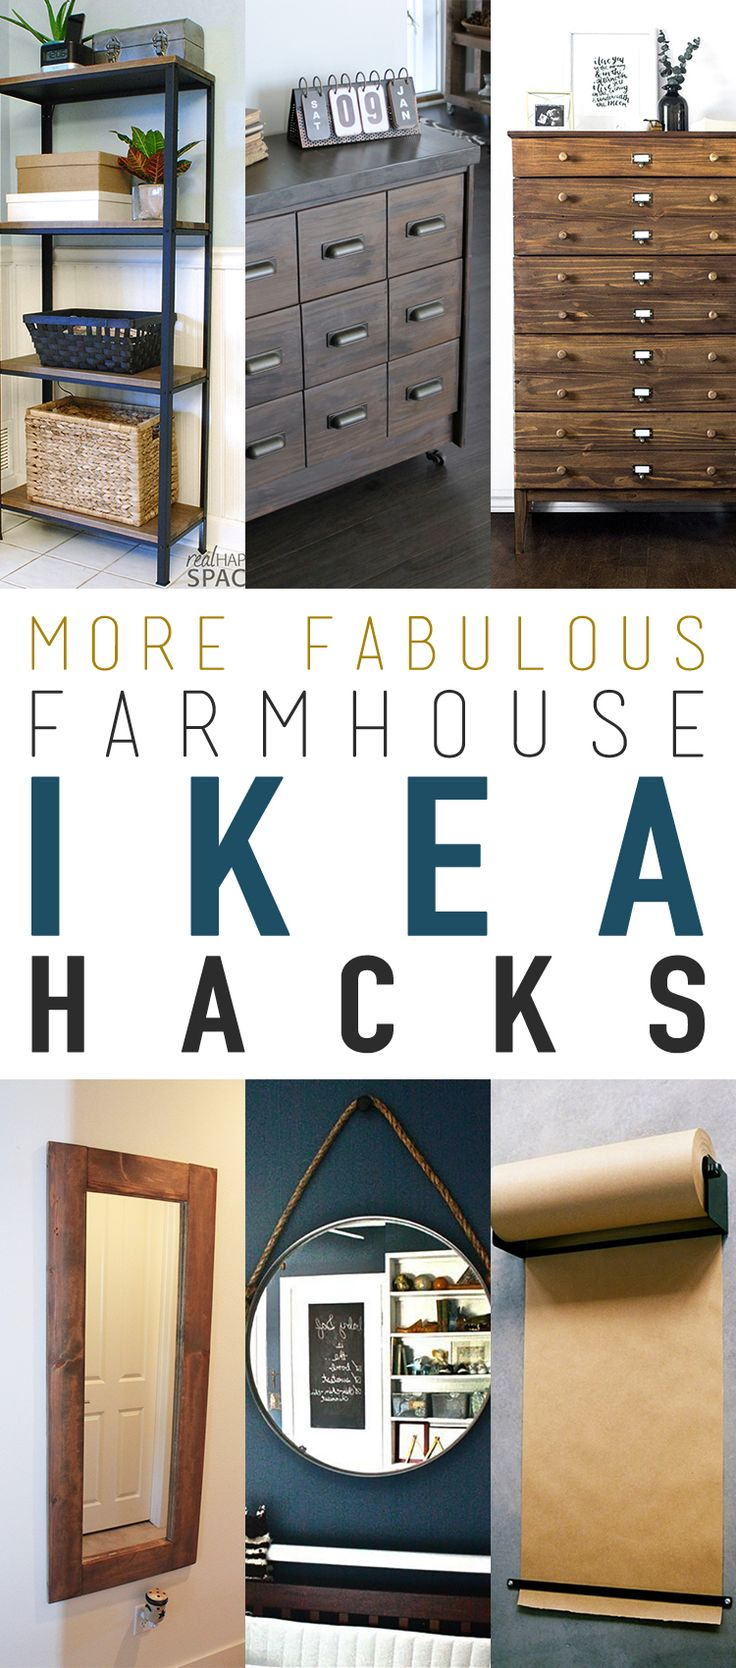 More Fabulous Farmhouse IKEA Hacks